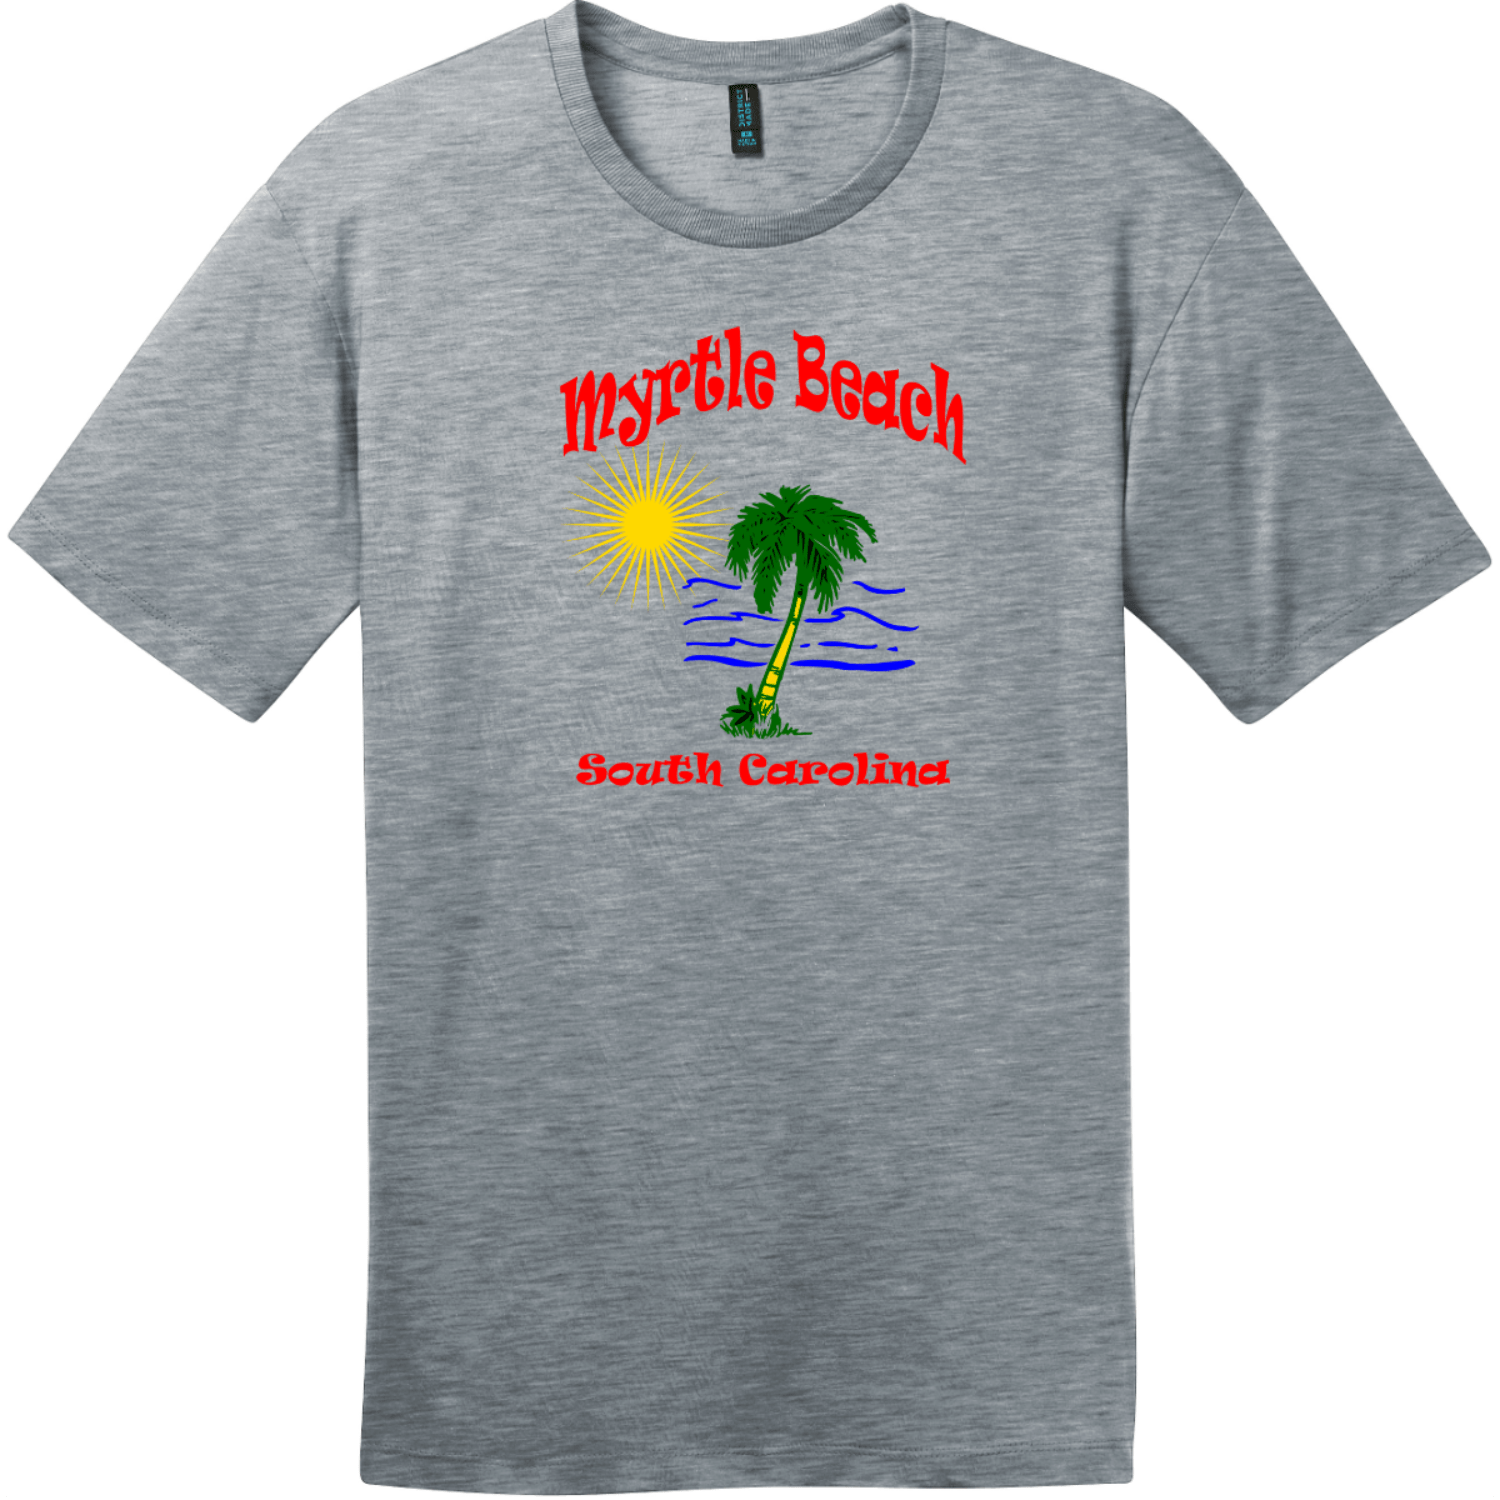 Myrtle Beach Palm Tree Water T-Shirt Heathered Steel District Perfect Weight Tee DT104